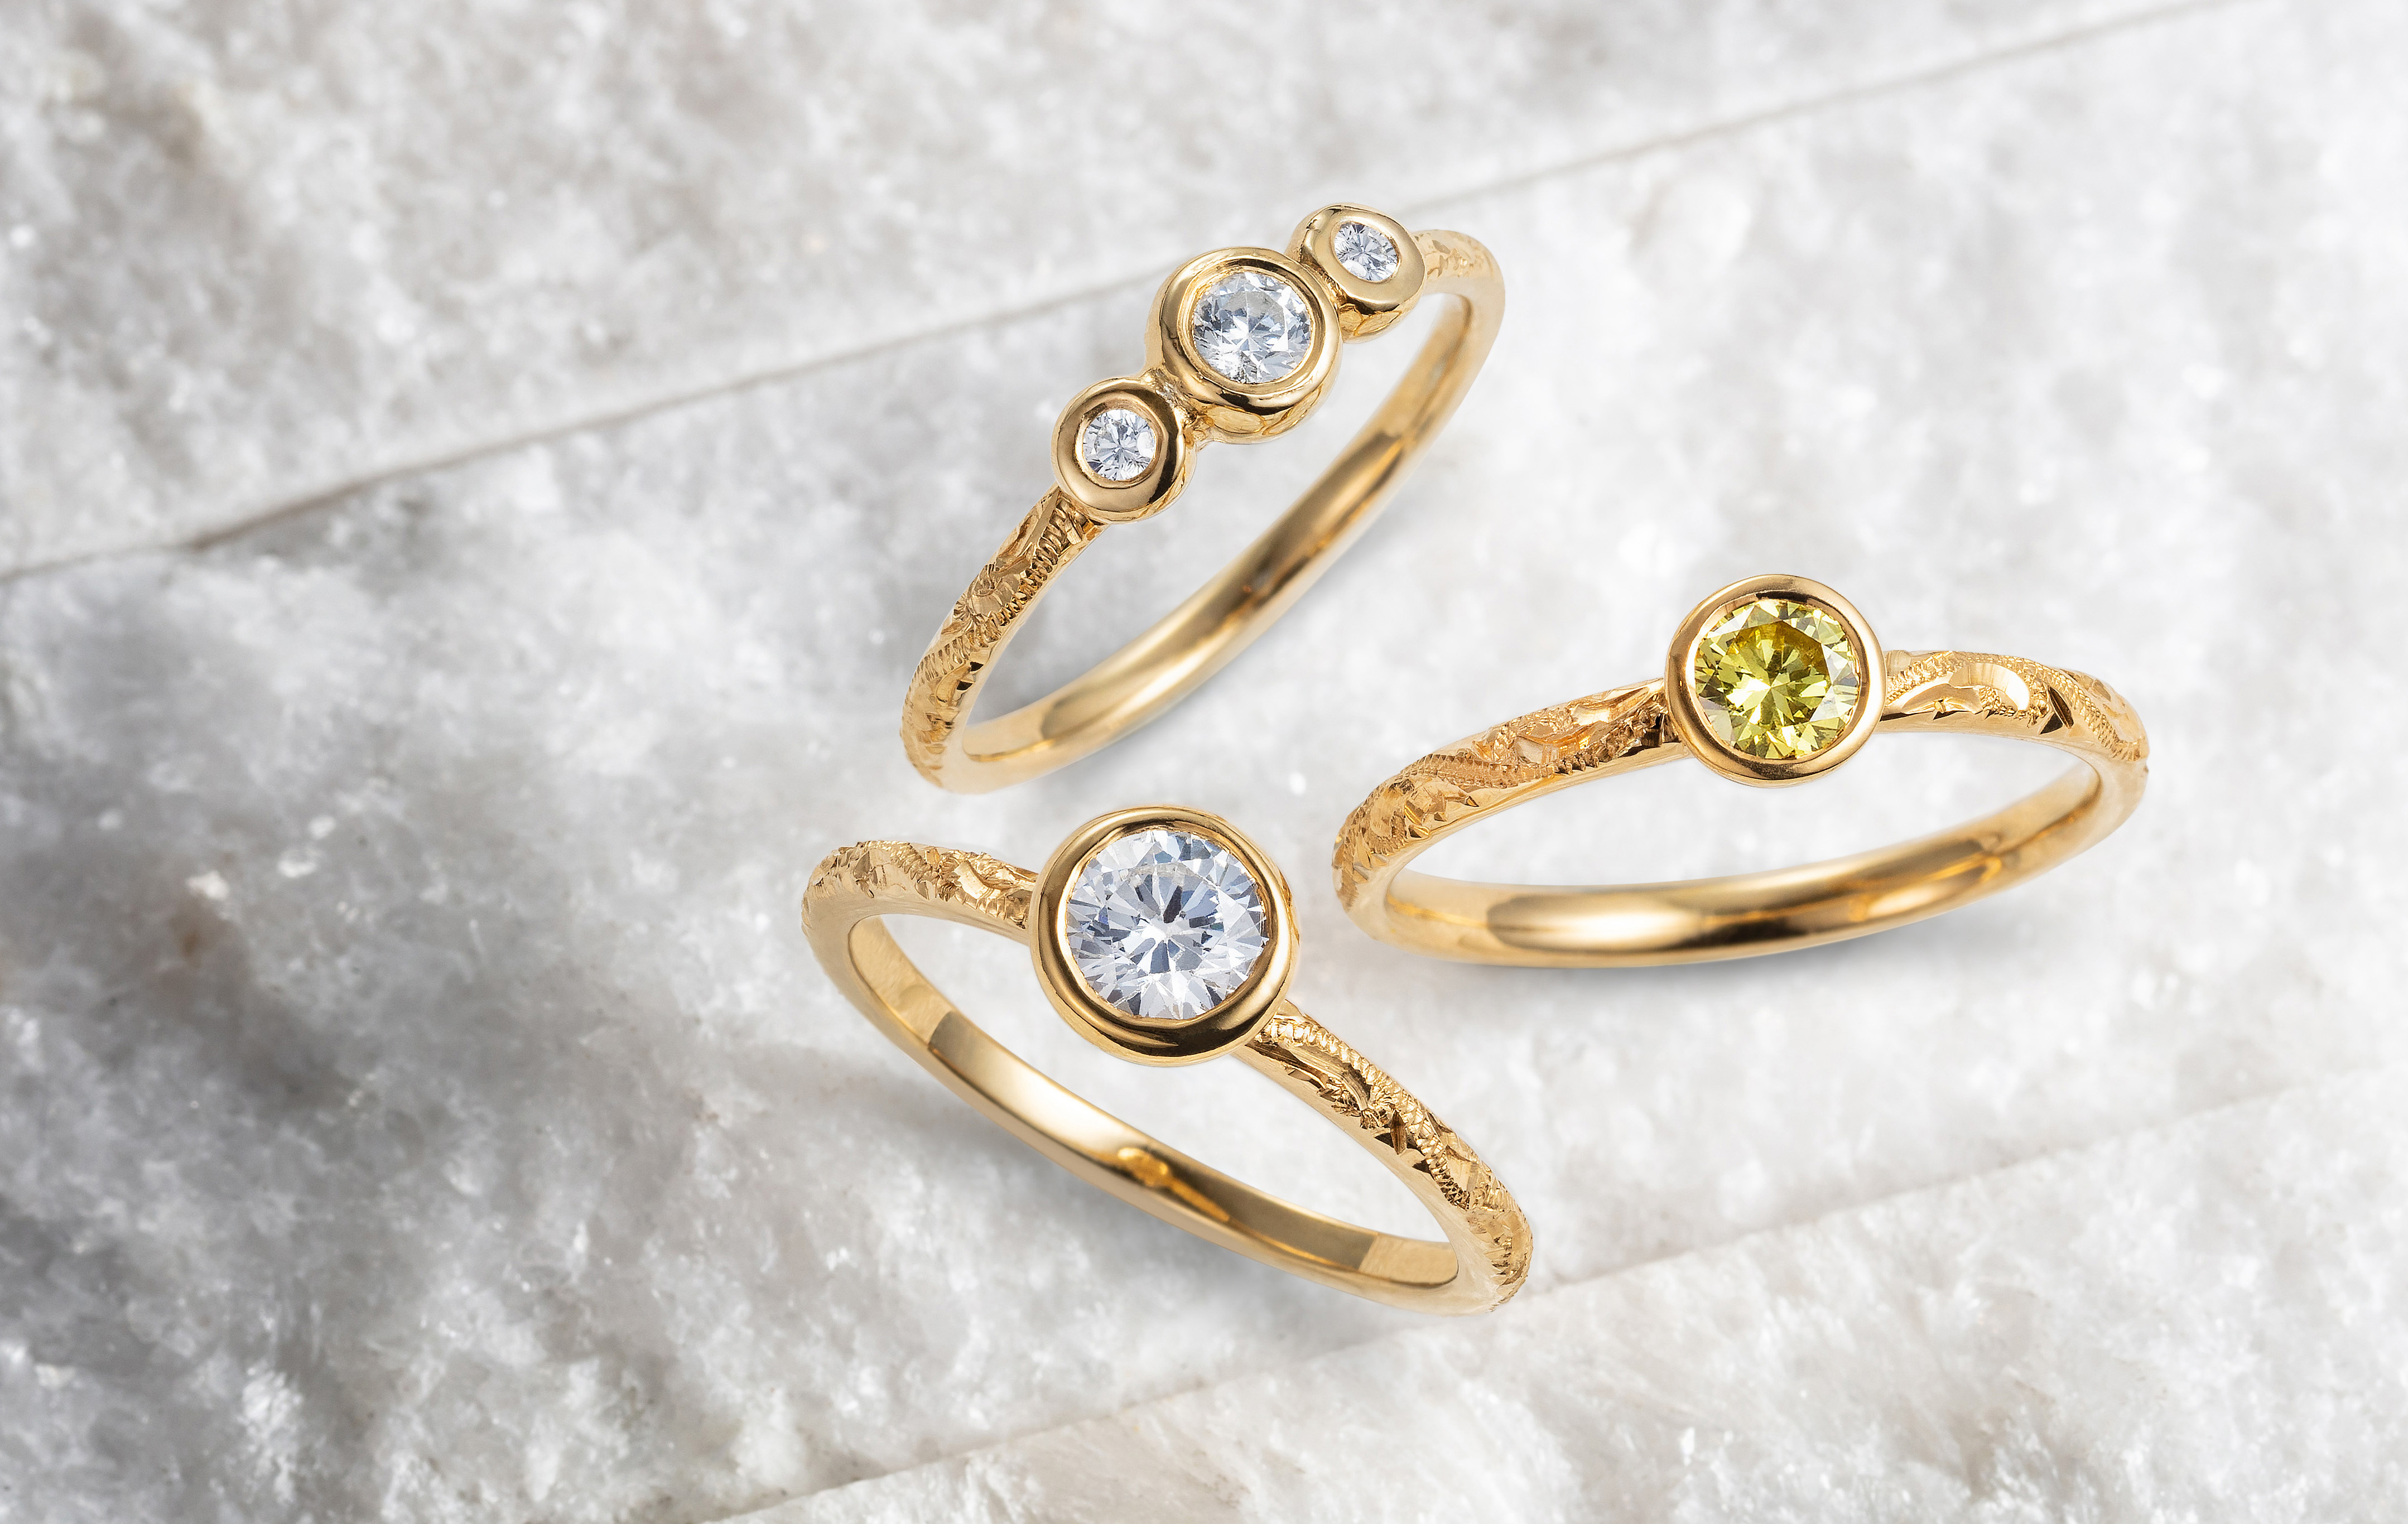 Arabel Lebrusan's Hera Collection, traceable sapphires and diamonds on ethical gold